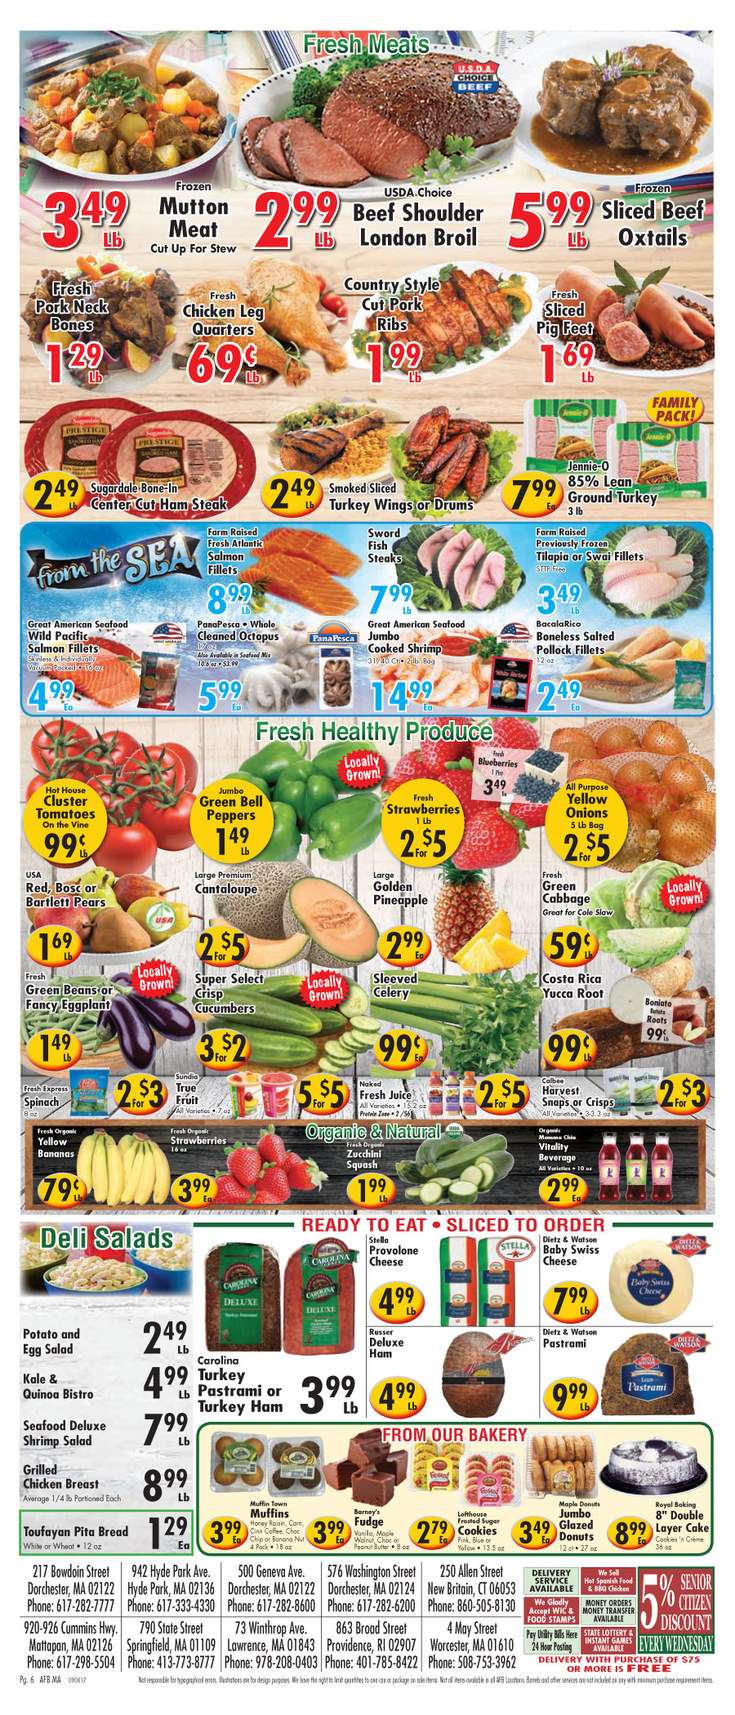 America 39 s food basket coupons near me in new britain for American cuisine near me